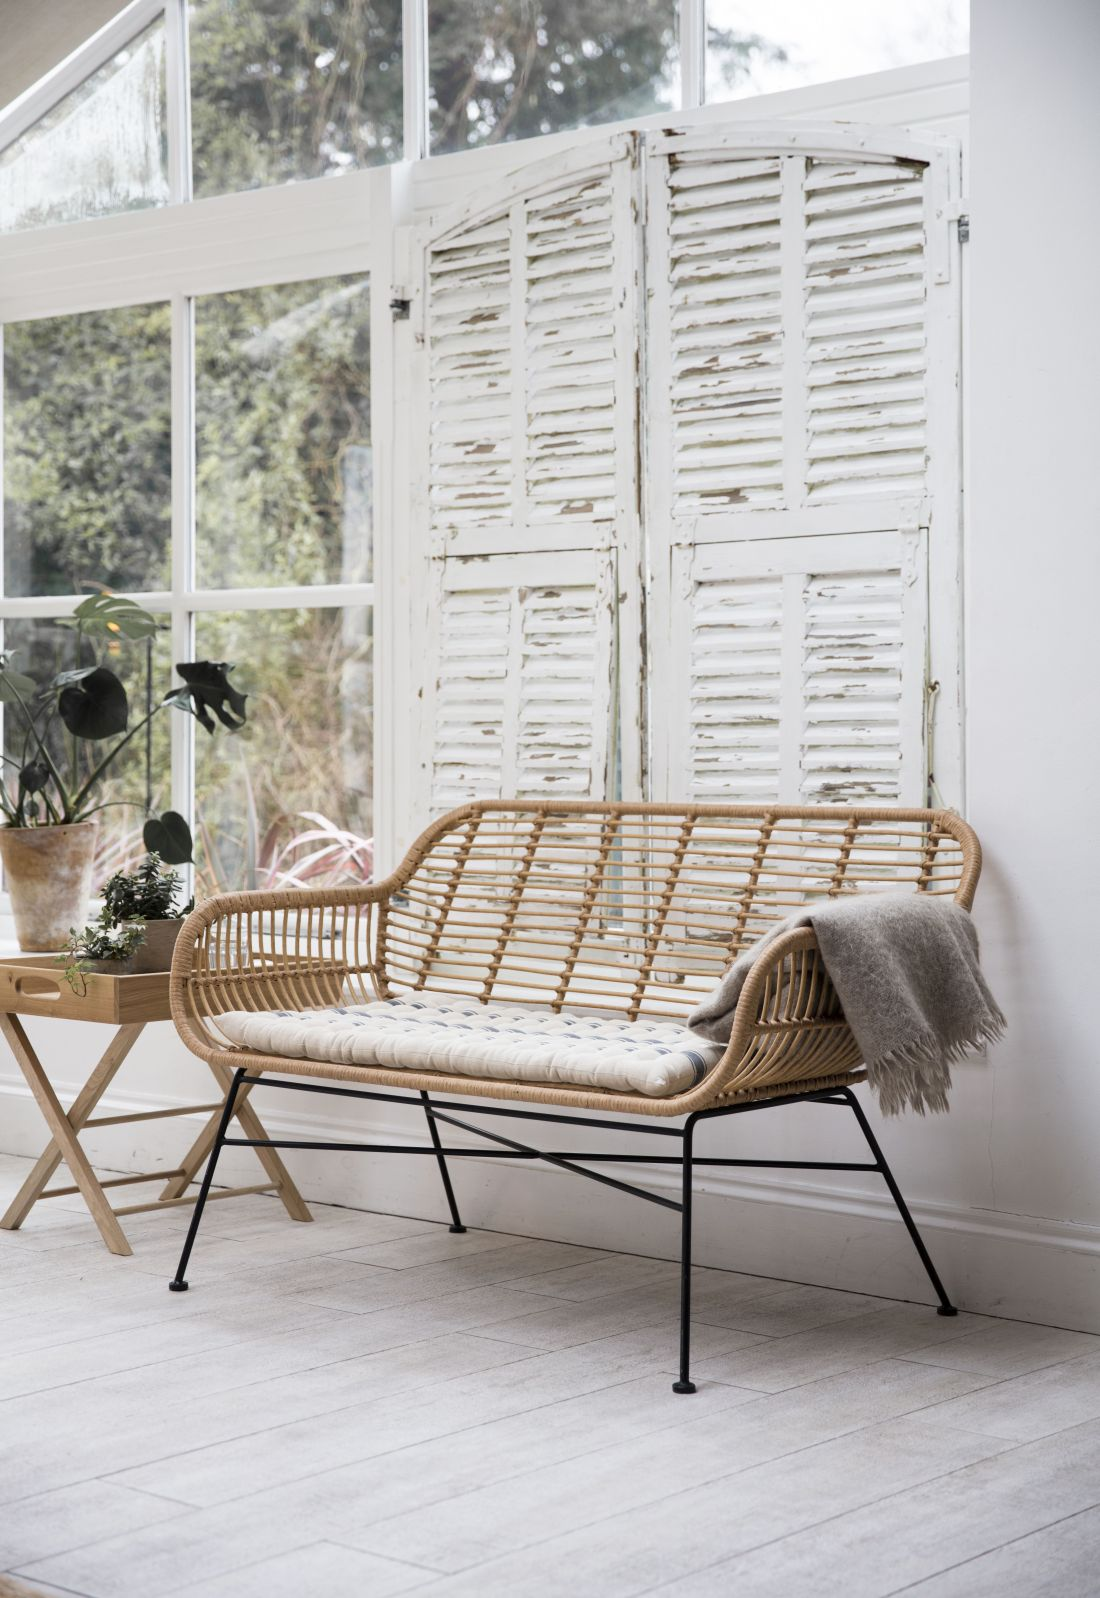 18garden-trading_aw18-hampstead-bench-all-weather-bamboo.jpg